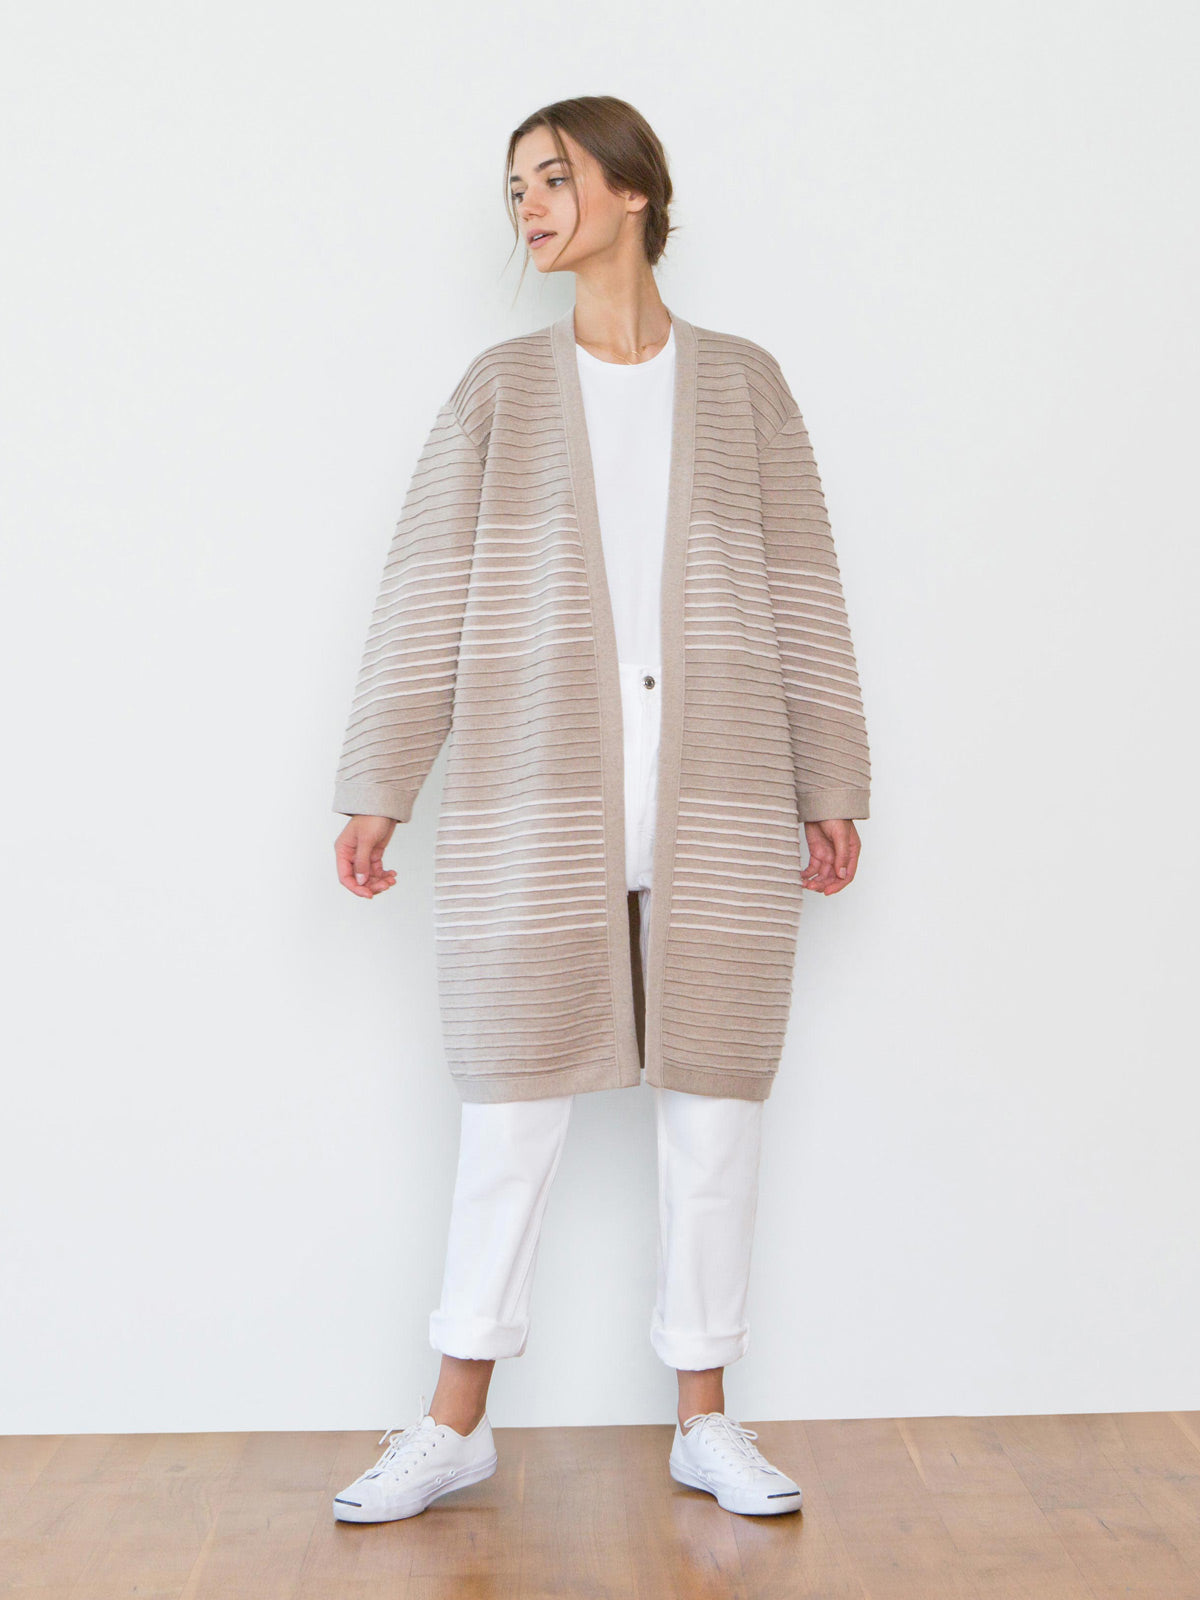 Chloe Striped Wool Sweater Coat | Mushroom Chloe Striped Wool Sweater Coat | Mushroom